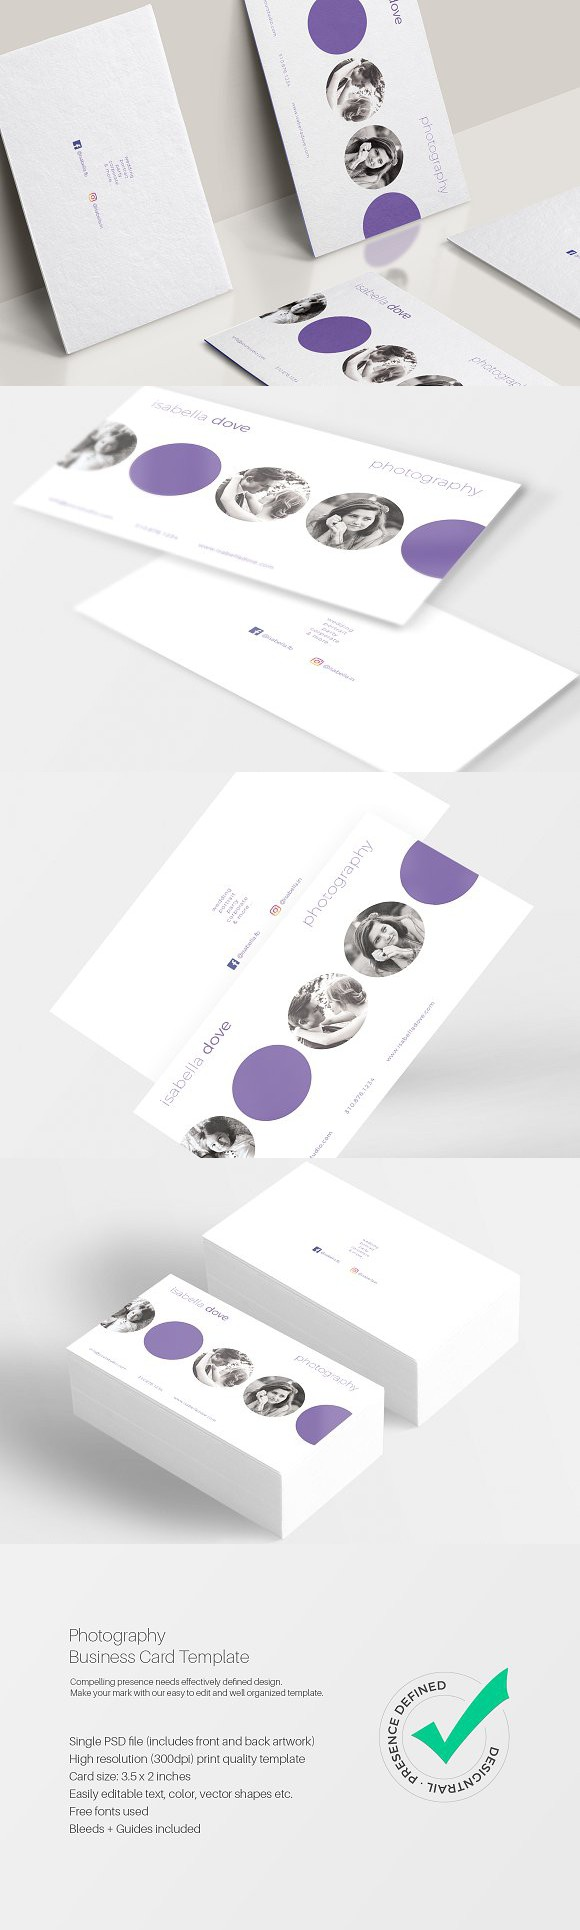 Photography business card template business card templates wordpress landing page themes find this pin and more on business card templates reheart Choice Image